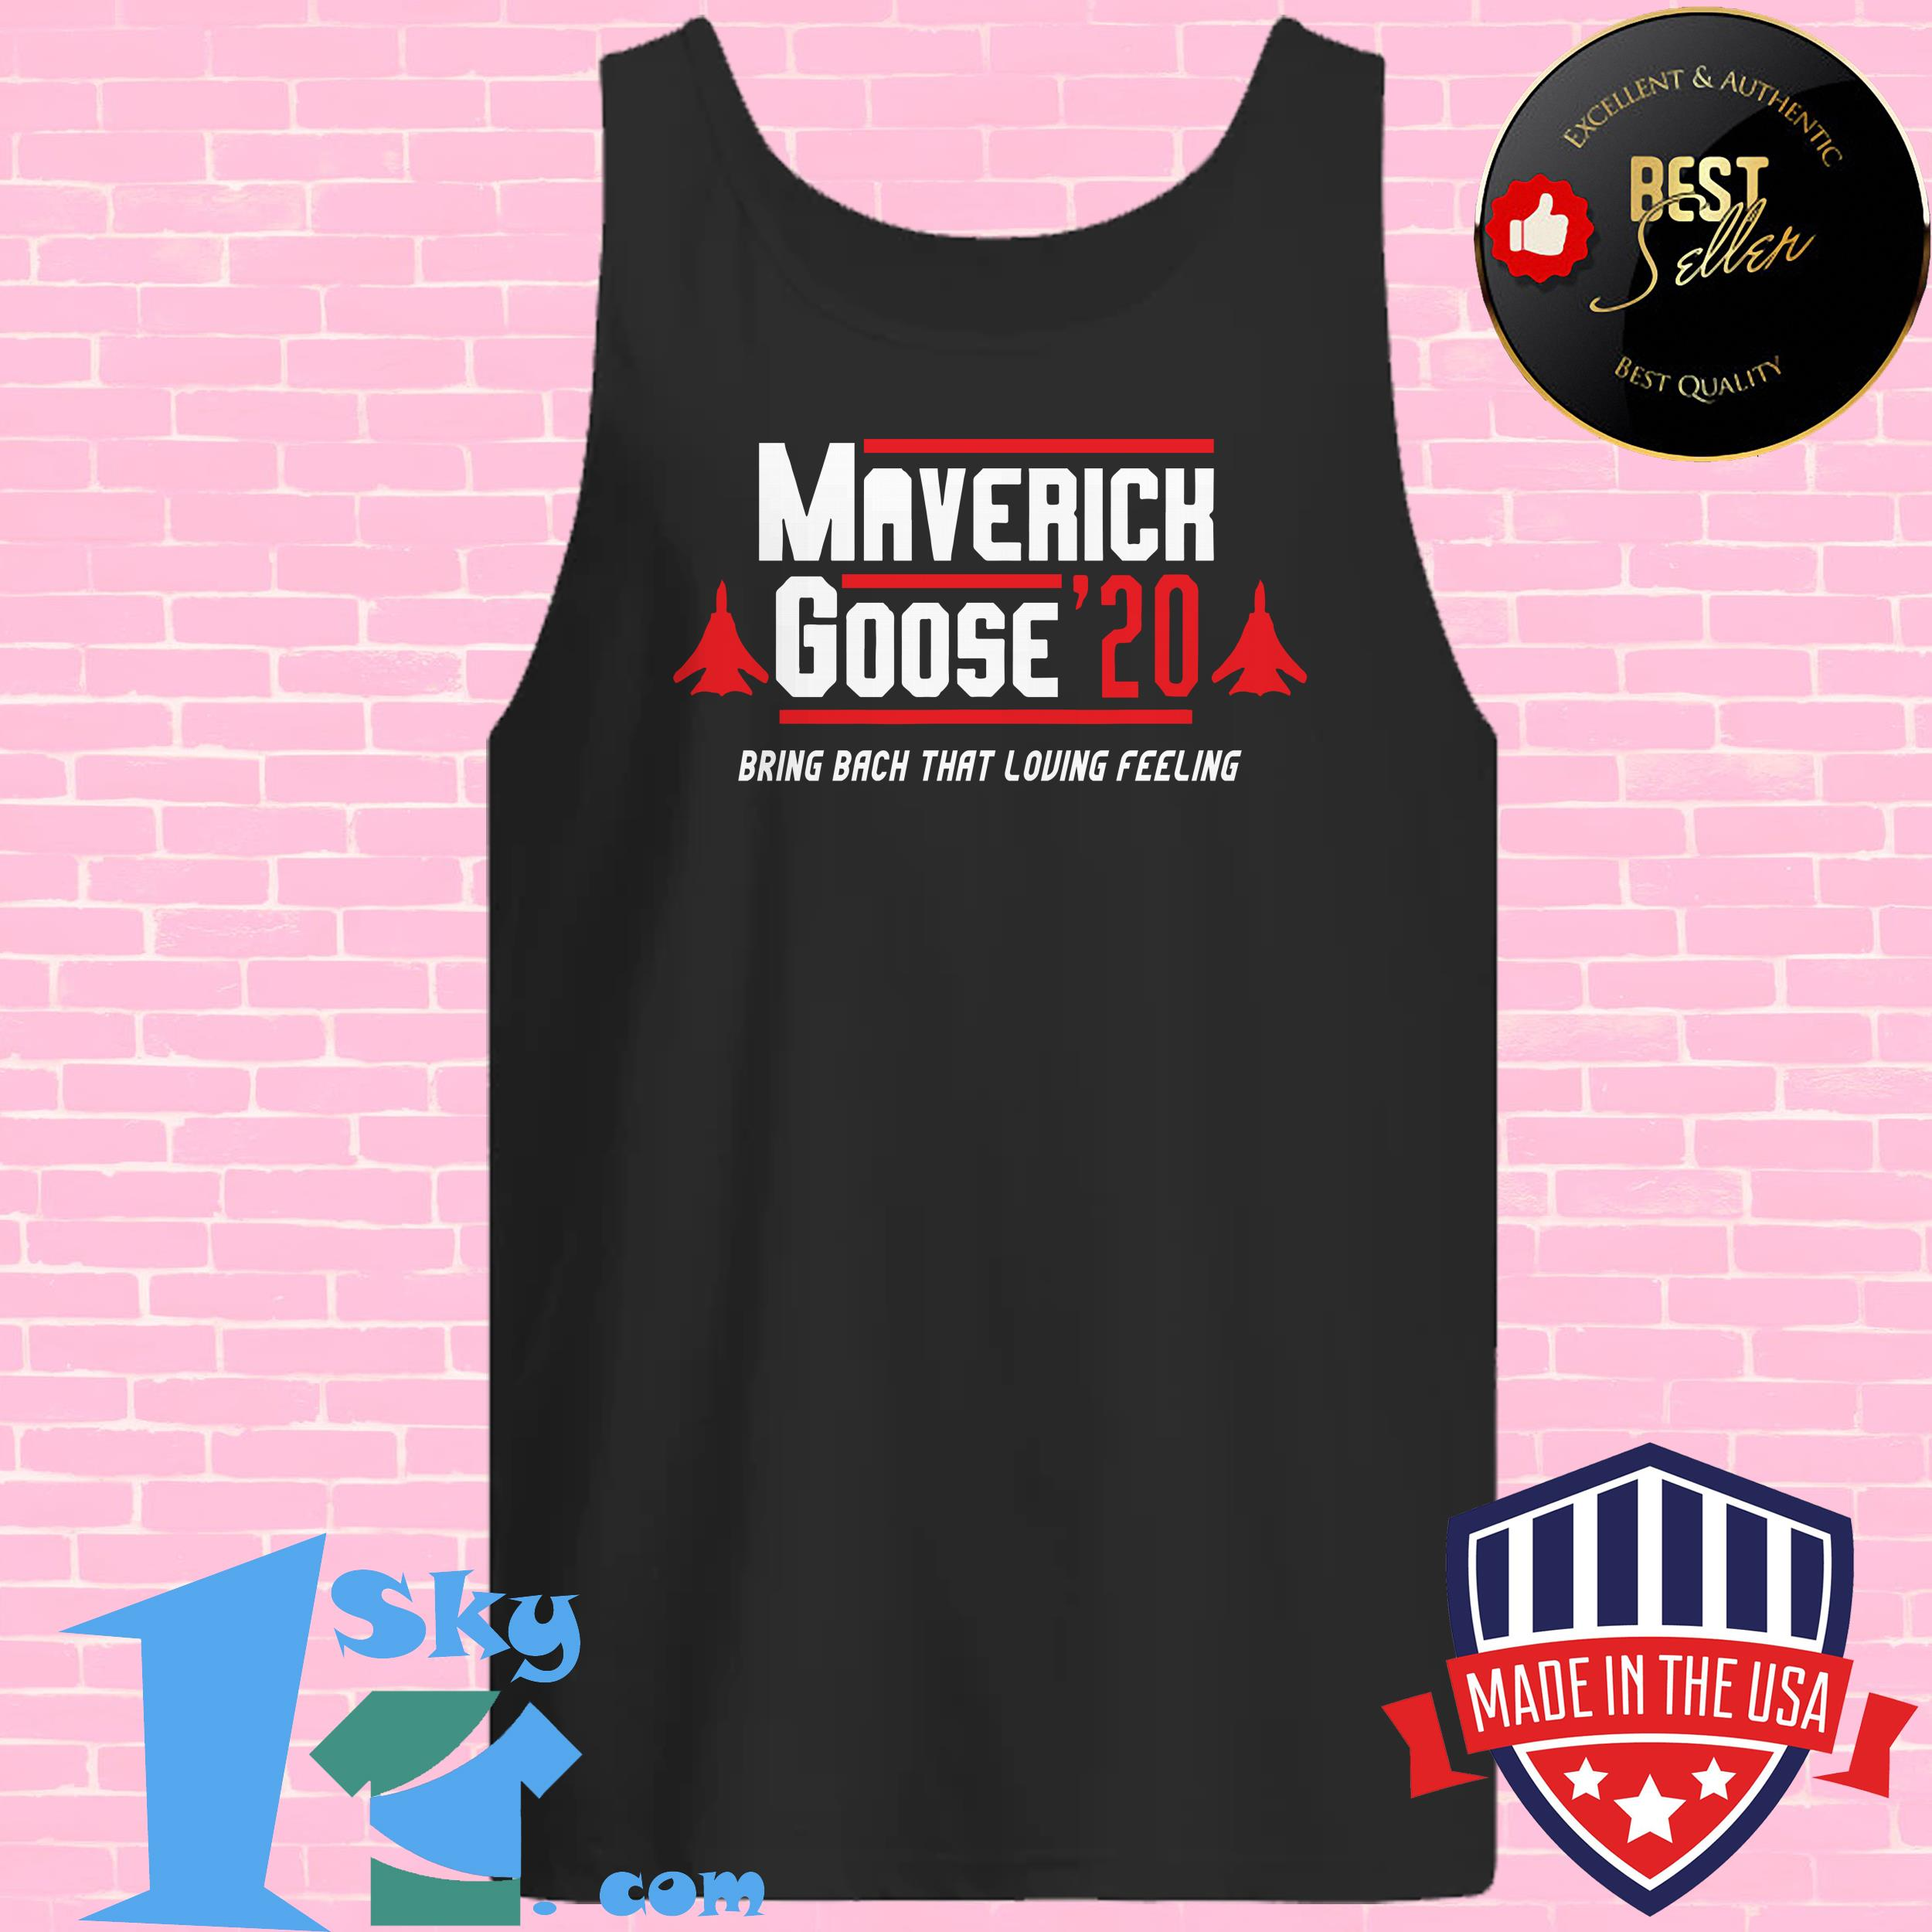 maverick goose 20 bring back that loving feeling tank top 1 - Maverick Goose 20 Bring Back That Loving Feeling Shirt